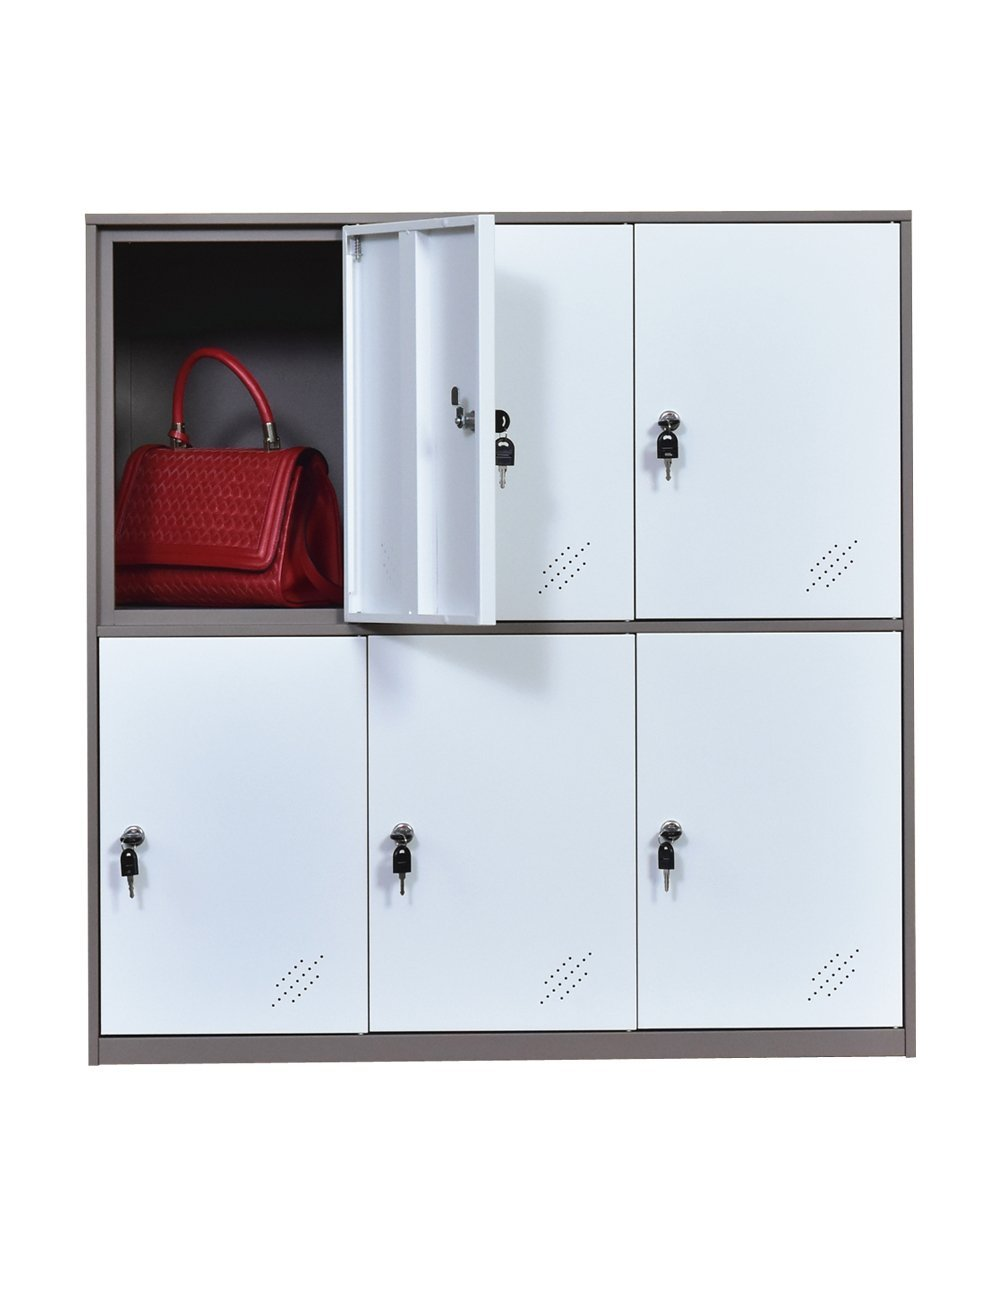 Metal Office and Home Locker Cabinet with 6 Doors Storage for Cloth Shoes or Bags,Two Layer 3 componet Locker Cabinet, Metal Cabinet for School and Living Room